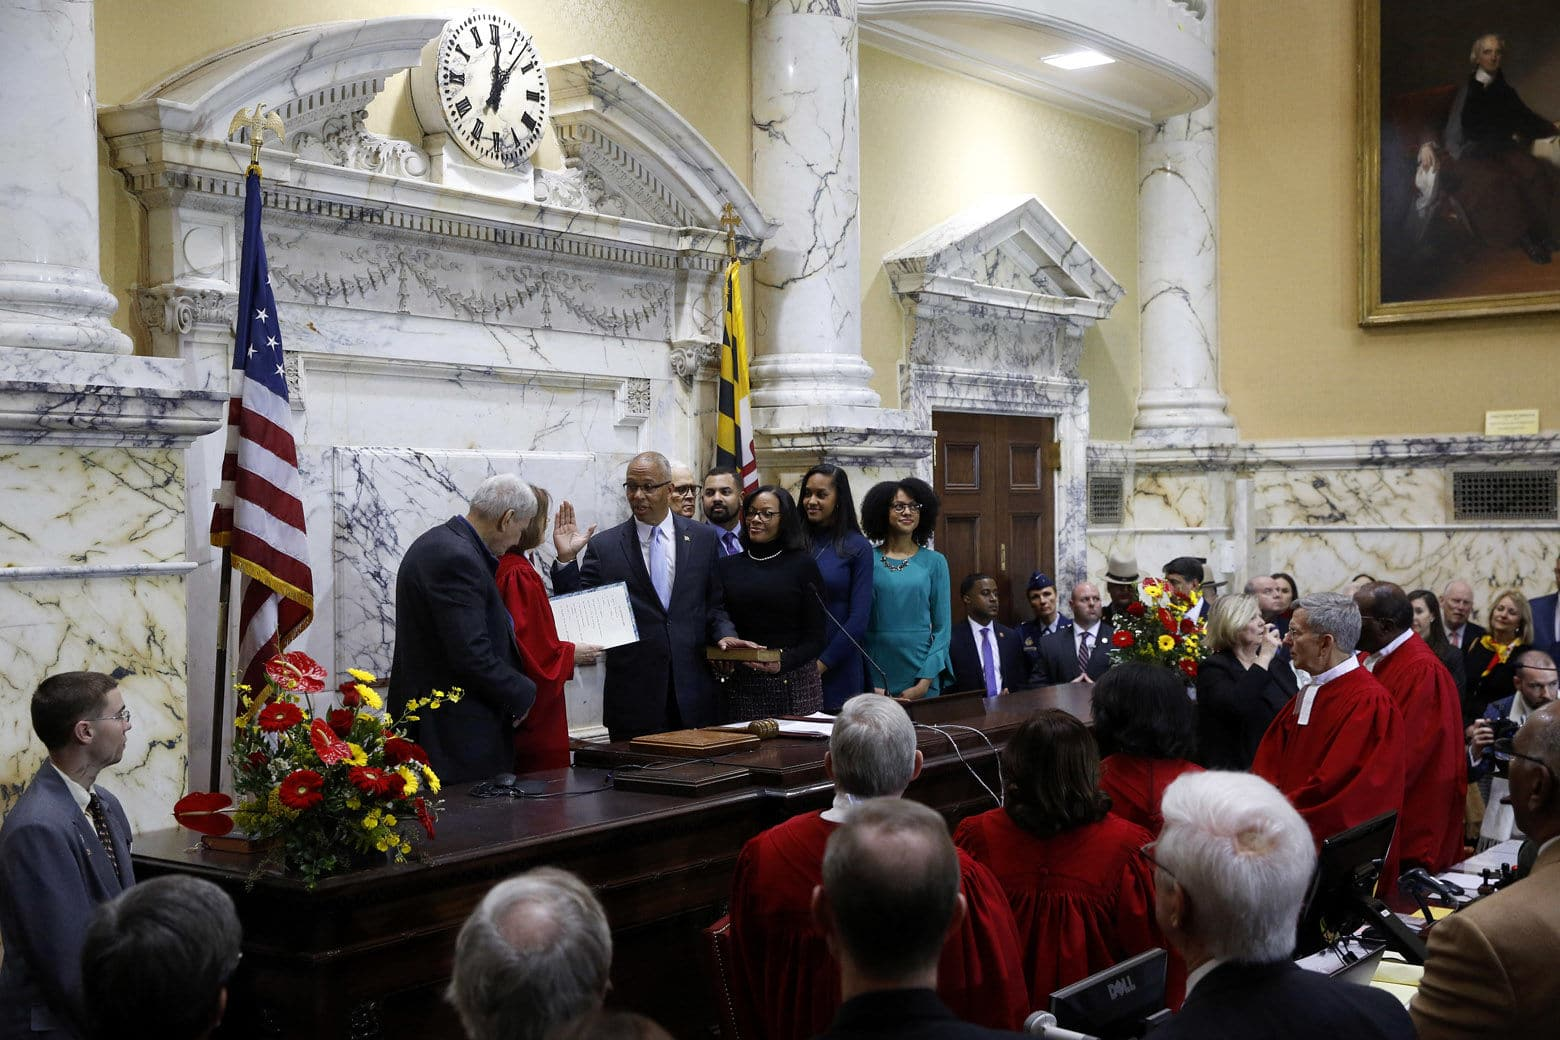 Maryland Lt. Gov. Boyd Rutherford, accompanied by his wife Monica and family, takes the oath of office from Mary Ellen Barbera, Chief Judge of the Maryland Court of Appeals, inside the State Senate chamber, Wednesday, Jan. 16, 2019, in Annapolis, Md. (AP Photo/Patrick Semansky, Pool)